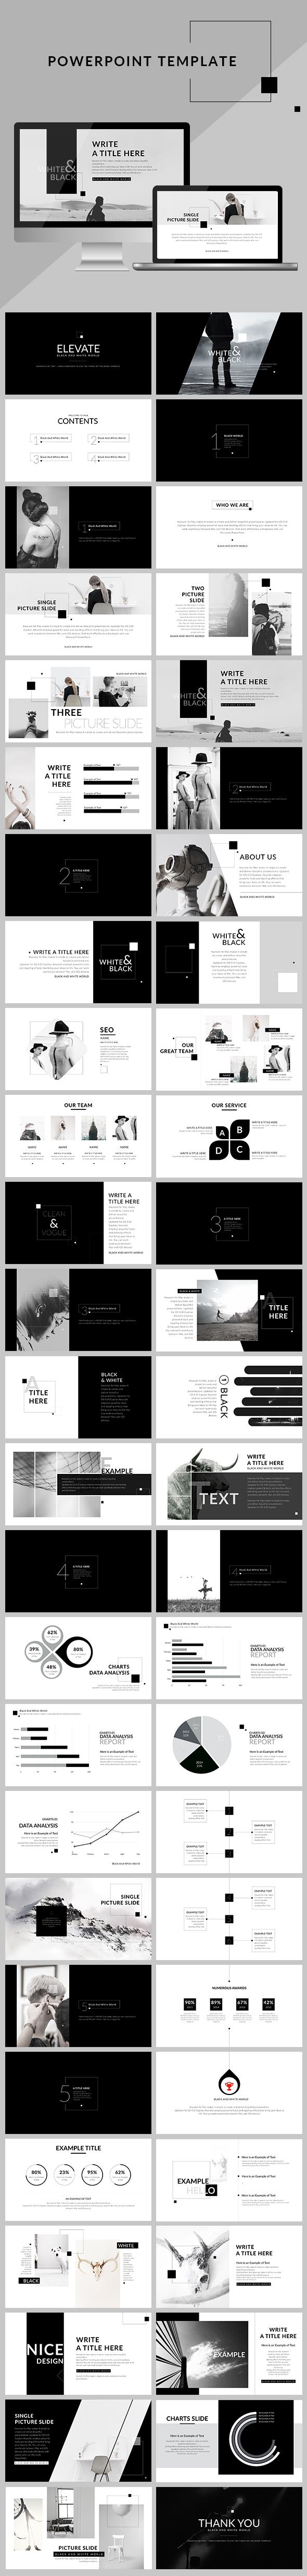 Black & White - Creative clean  presentation  Powerpoint Template • Download ➝ https://graphicriver.net/item/black-white-creative-clean-powerpoint-presentation/16990669?ref=pxcr